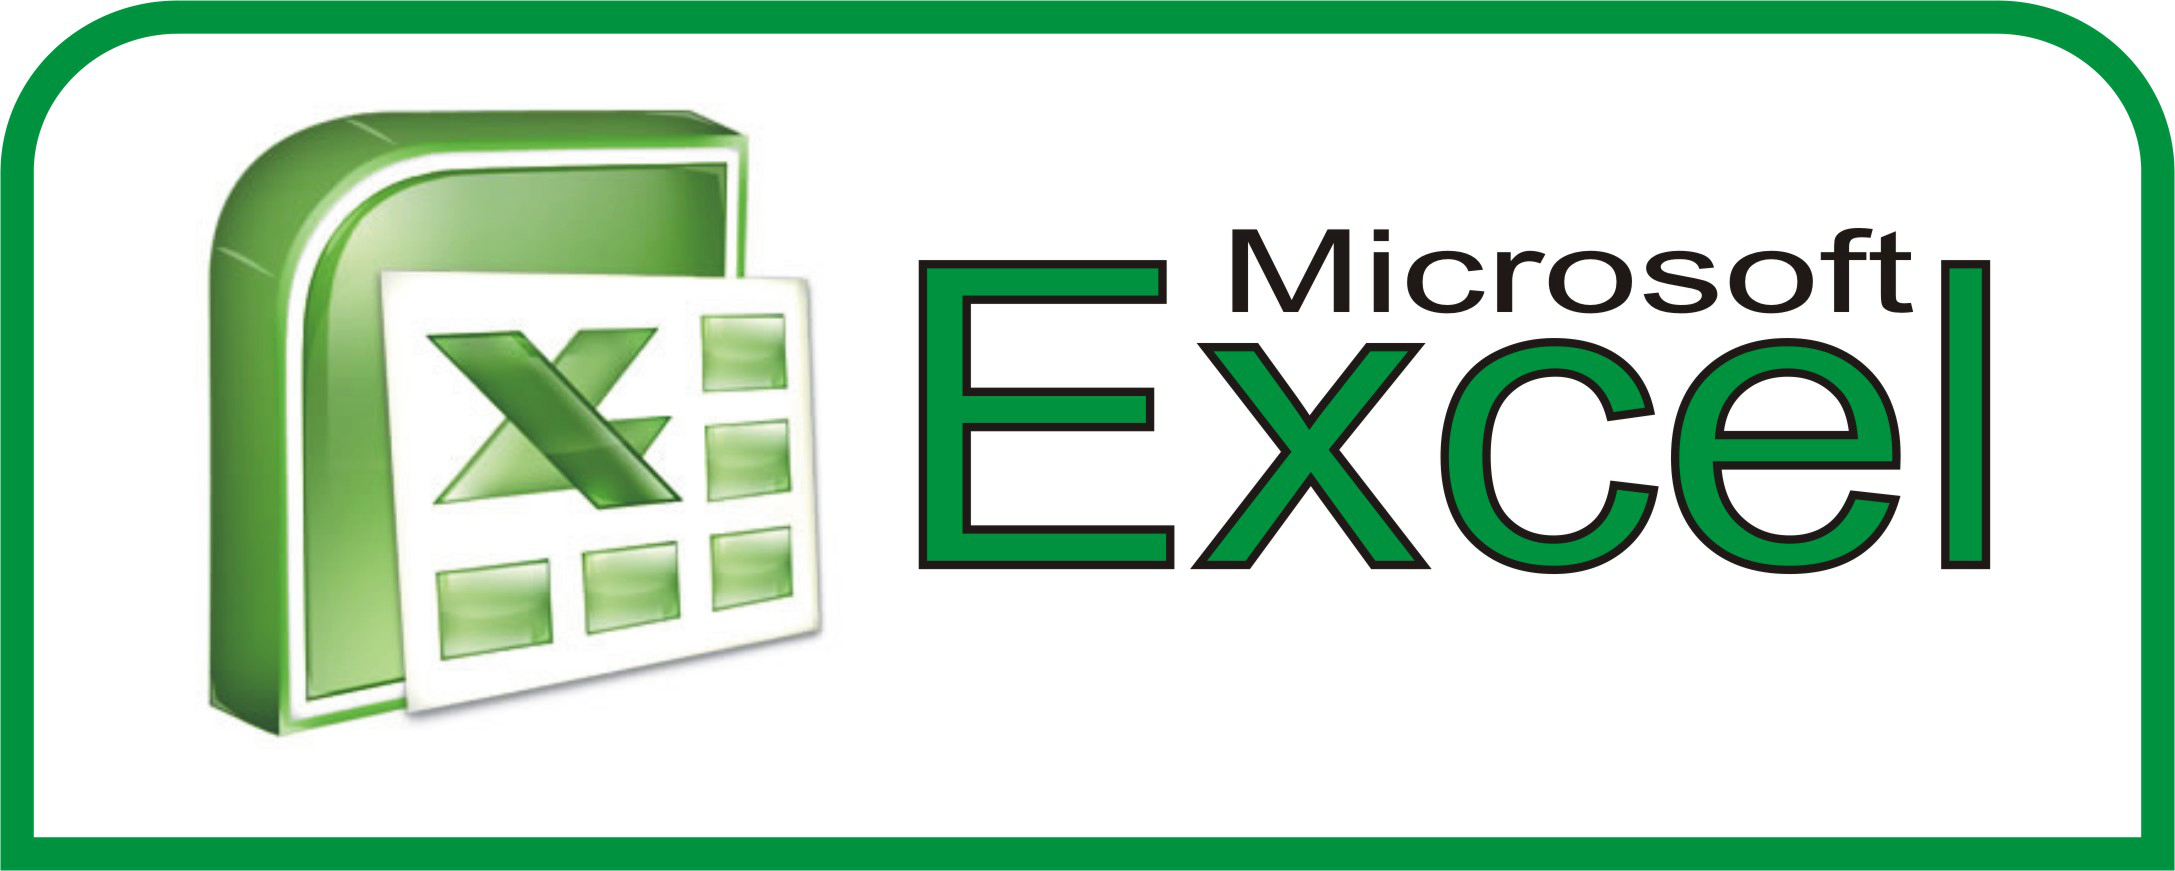 Ediblewildsus  Unique  Excel Shortcuts You Probably Didnt Know About  Techdissected With Glamorous Monte Carlo Simulations In Excel Besides How Do I Compare Two Excel Spreadsheets Furthermore Excel Formulas Addition With Appealing Shared Excel Spreadsheet Also Excel Formula Multiple If In Addition How Do You Do Percentages In Excel And Excel Home Improvement As Well As Excel Formulas Examples Additionally Guide To Excel From Techdissectedcom With Ediblewildsus  Glamorous  Excel Shortcuts You Probably Didnt Know About  Techdissected With Appealing Monte Carlo Simulations In Excel Besides How Do I Compare Two Excel Spreadsheets Furthermore Excel Formulas Addition And Unique Shared Excel Spreadsheet Also Excel Formula Multiple If In Addition How Do You Do Percentages In Excel From Techdissectedcom